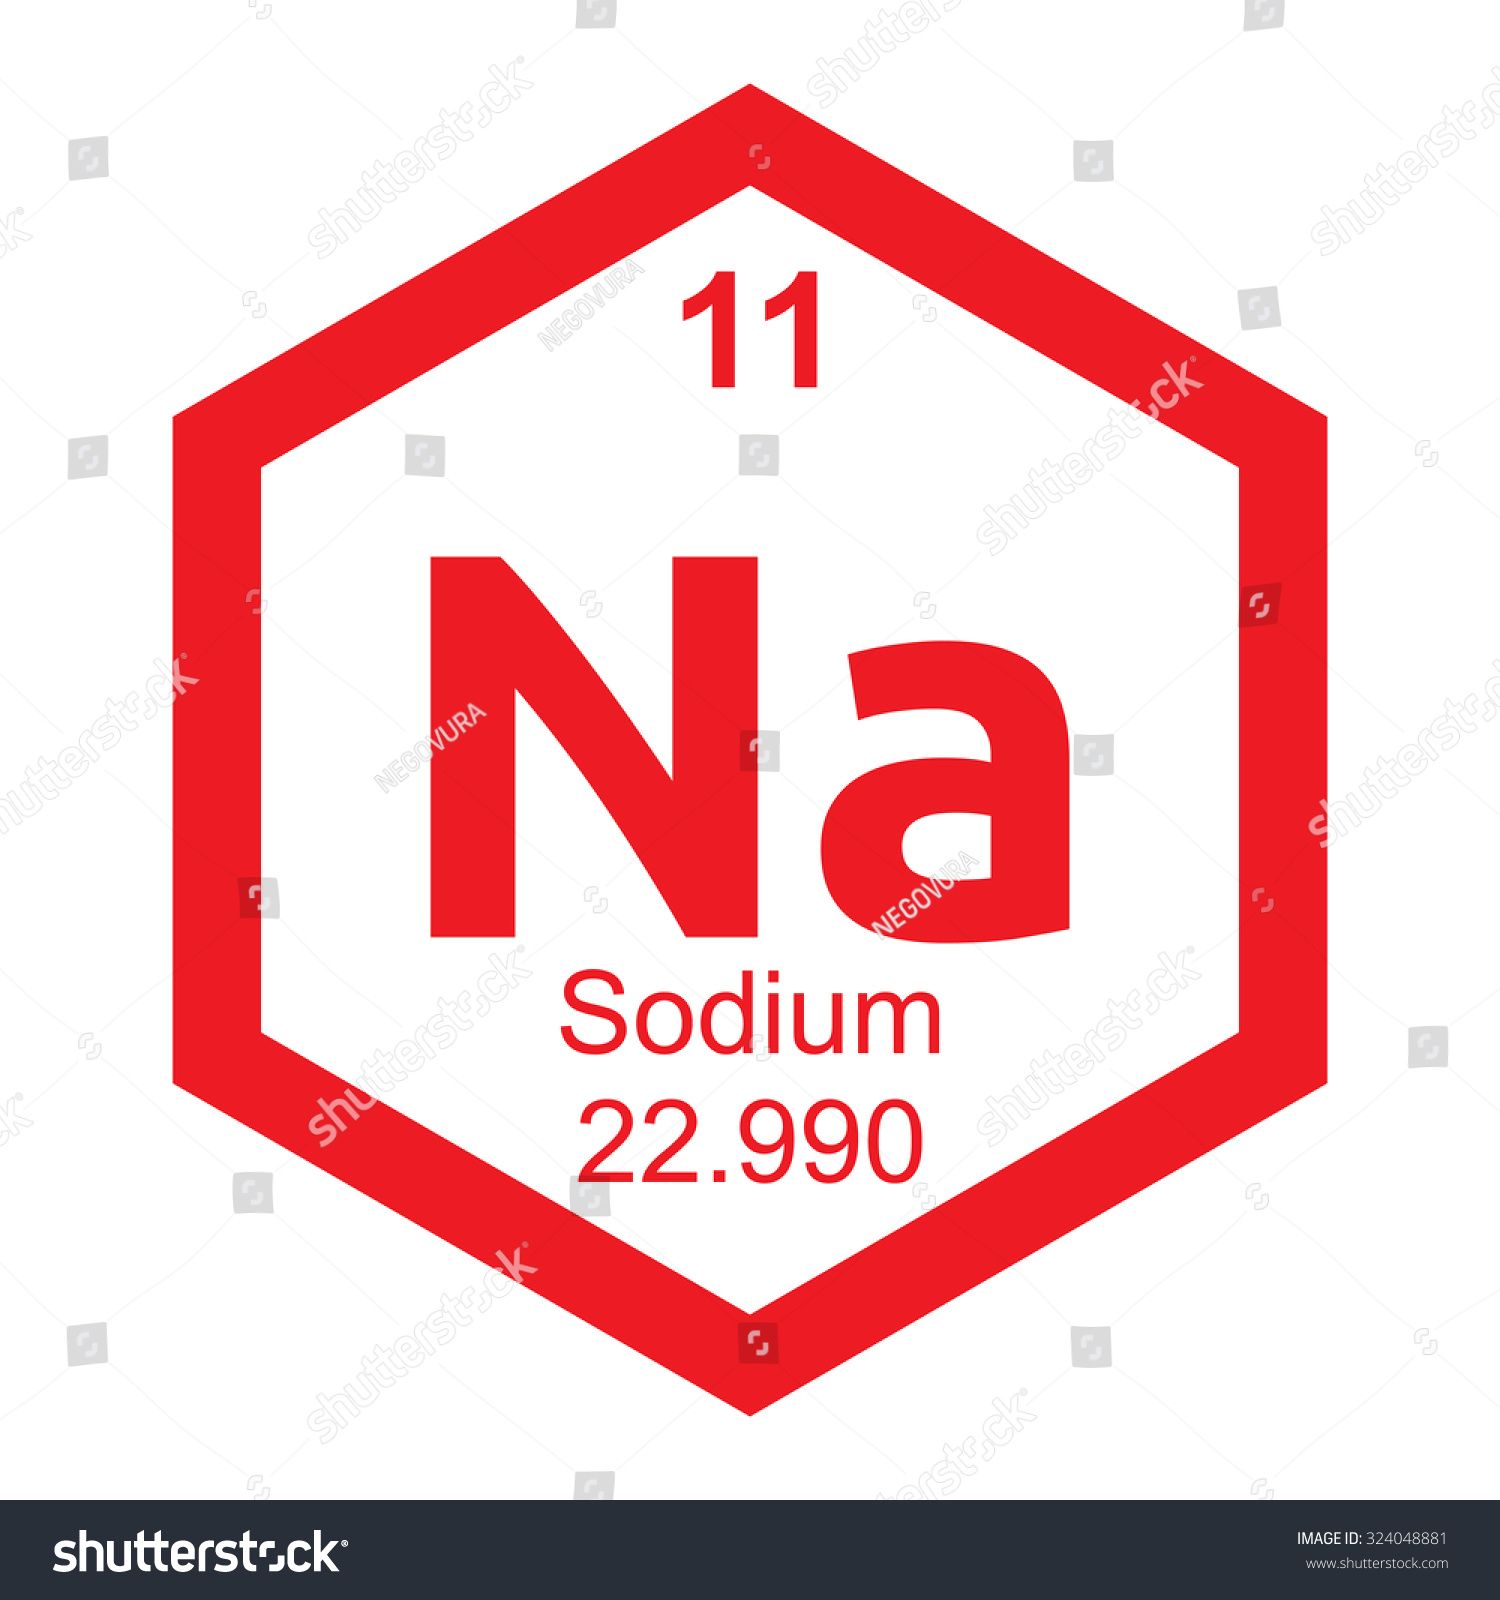 Periodic table sodium element stock vector 324048881 shutterstock periodic table sodium element gamestrikefo Image collections